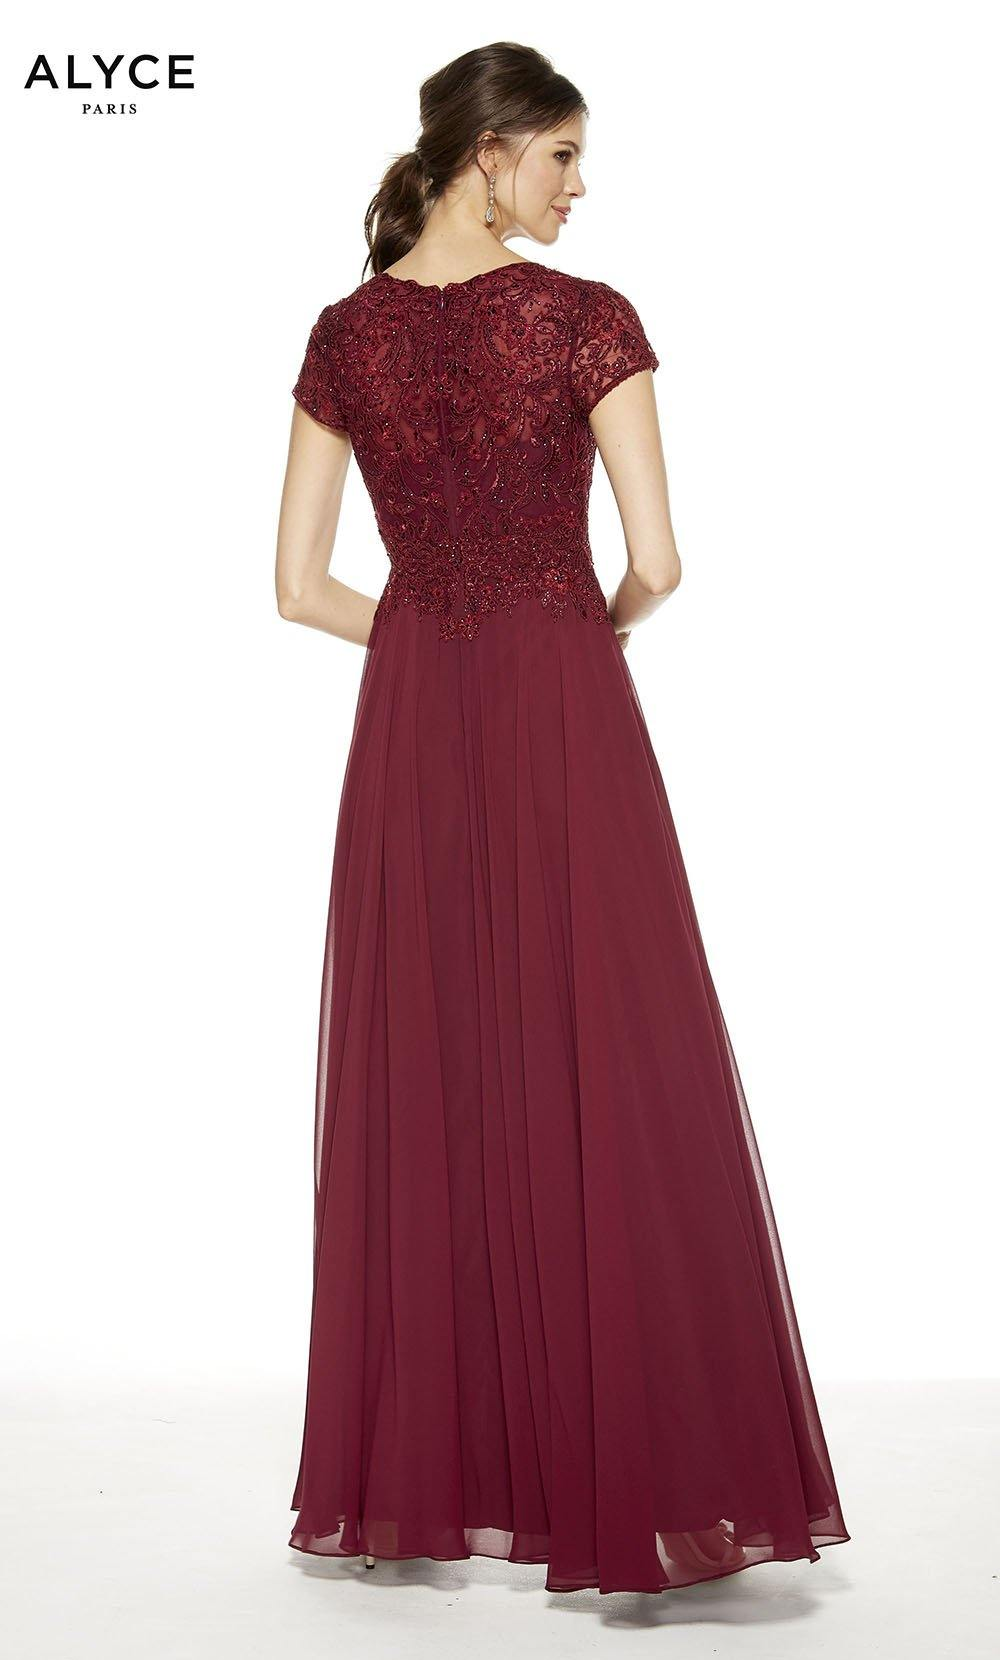 Burgundy flowy wedding guest dress with an enclosed back